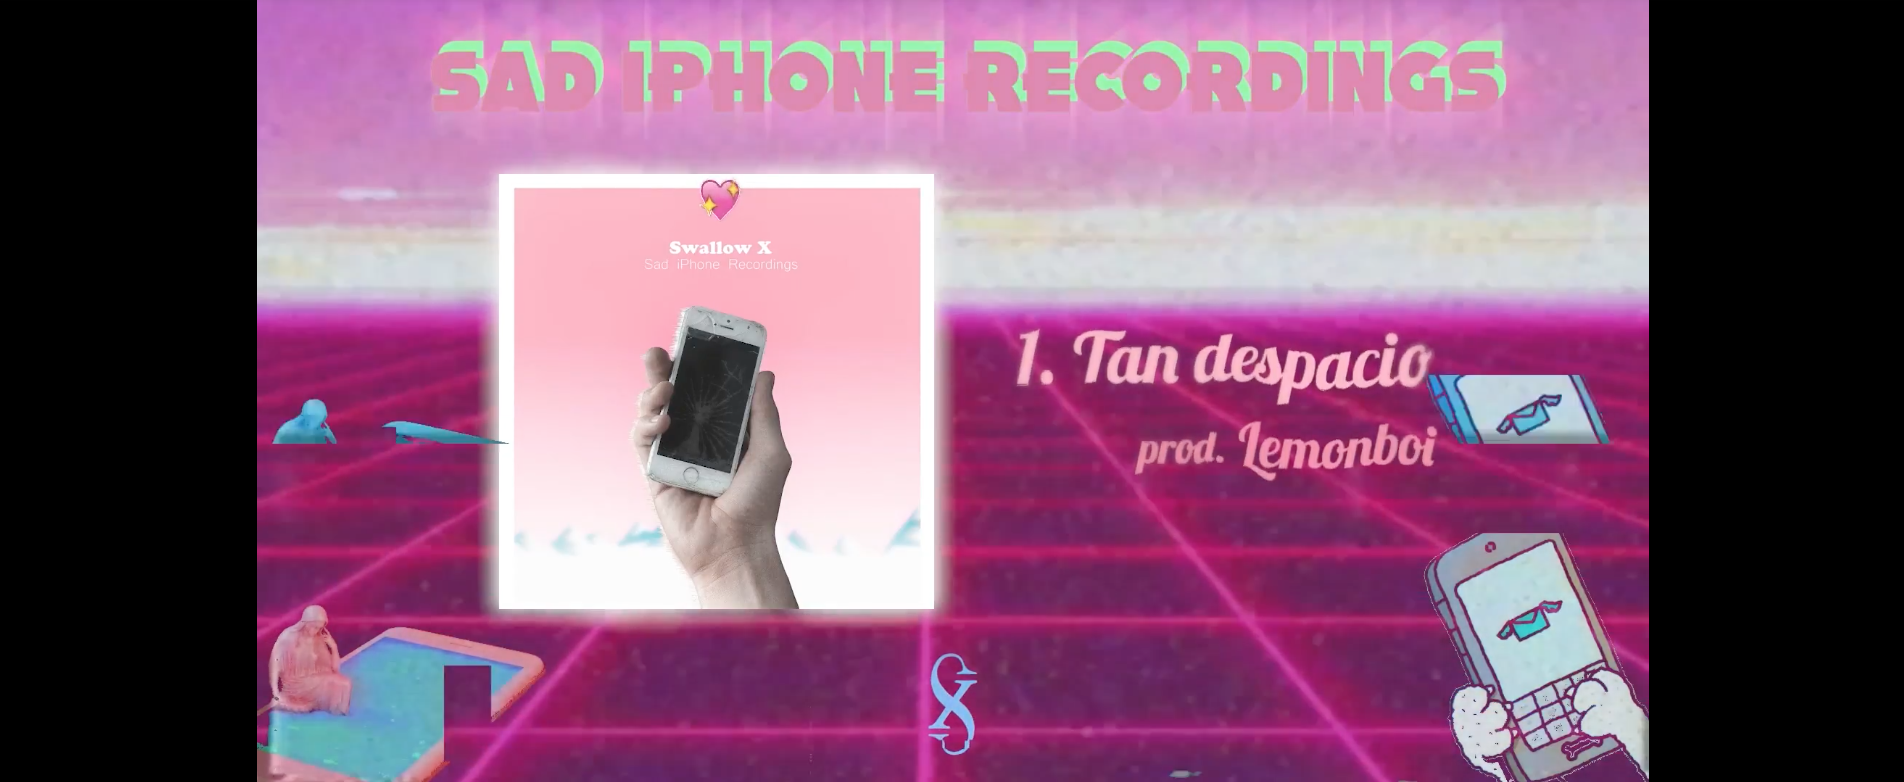 "Swallow x presenta ""Sad Iphone Recordings"""